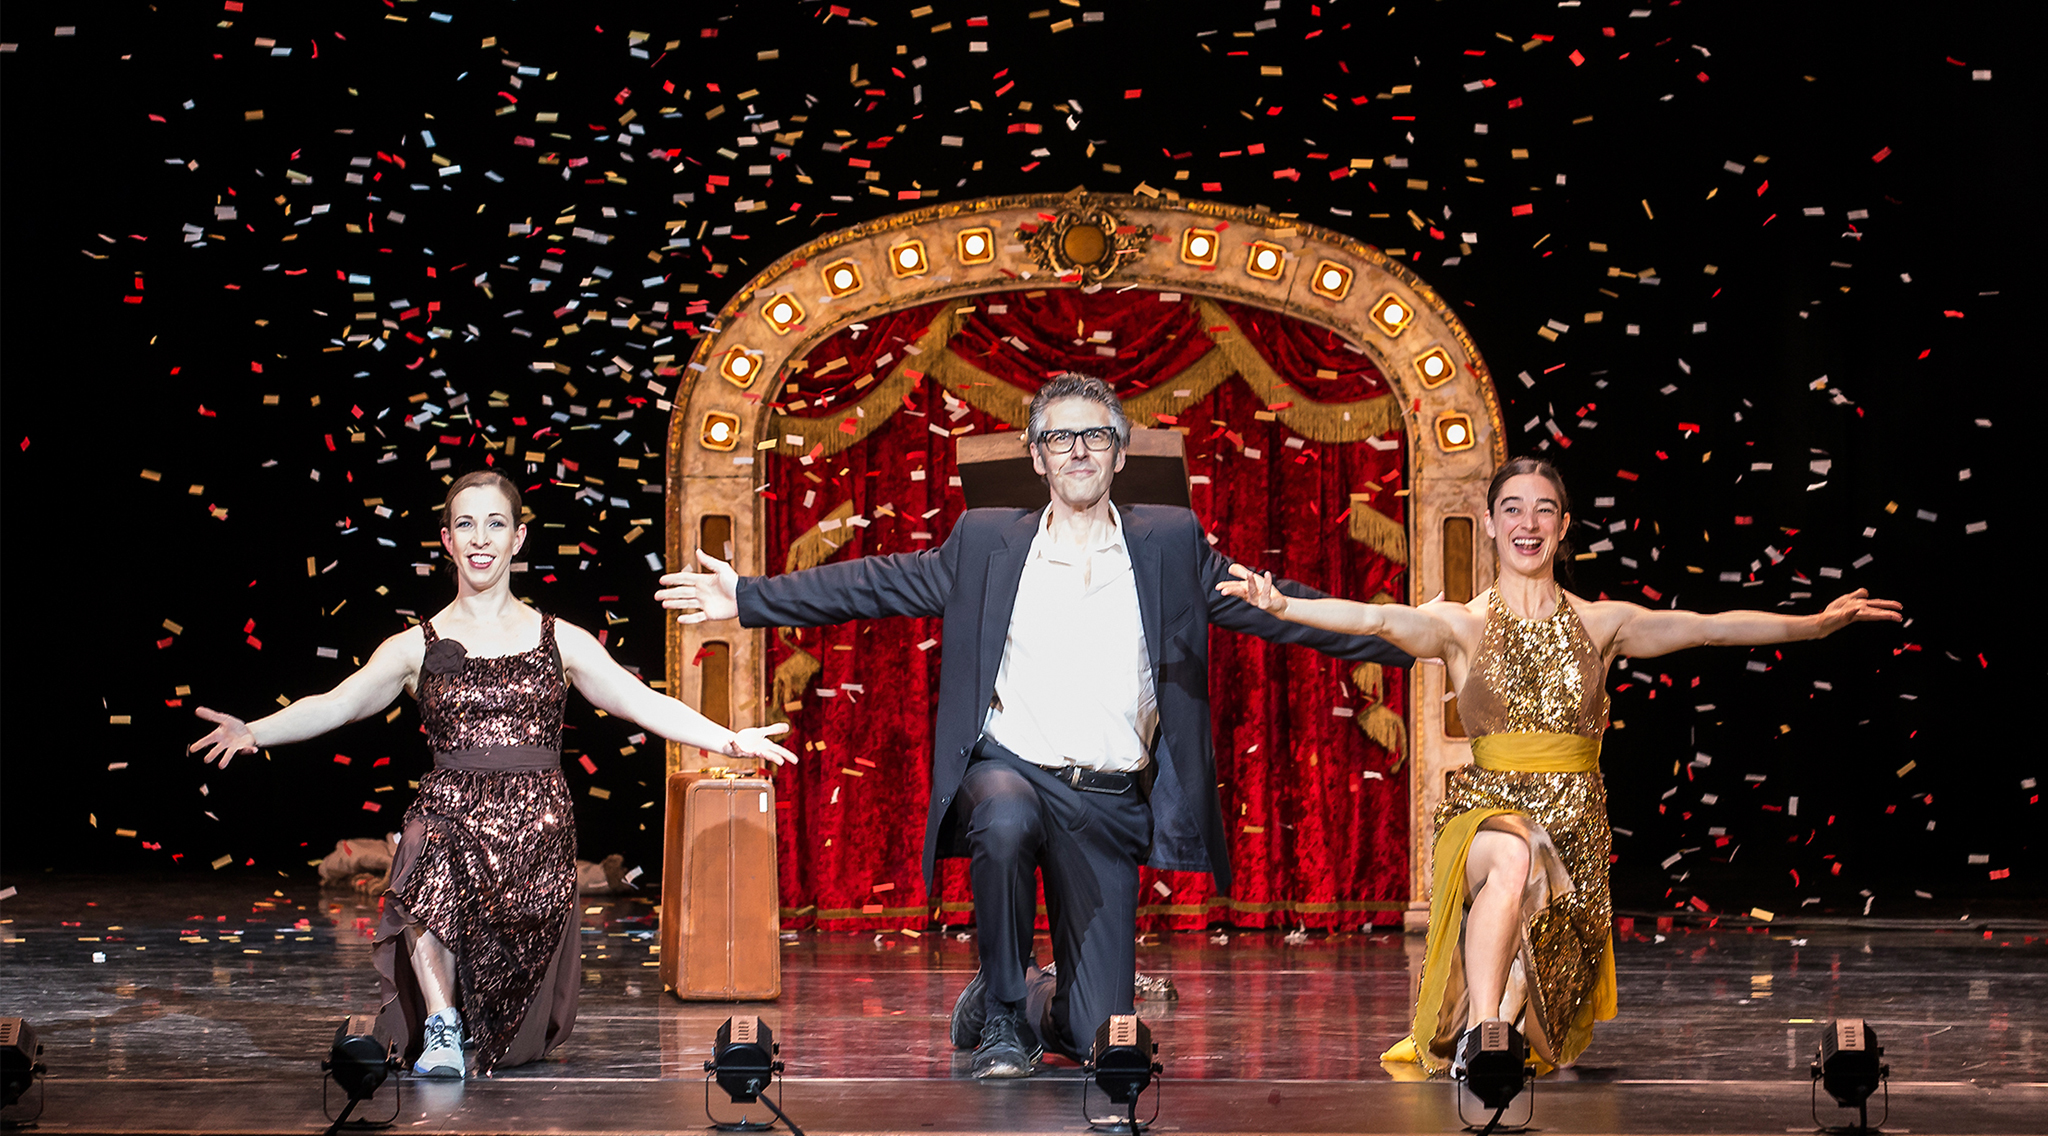 'This American Life' host Ira Glass is coming to London